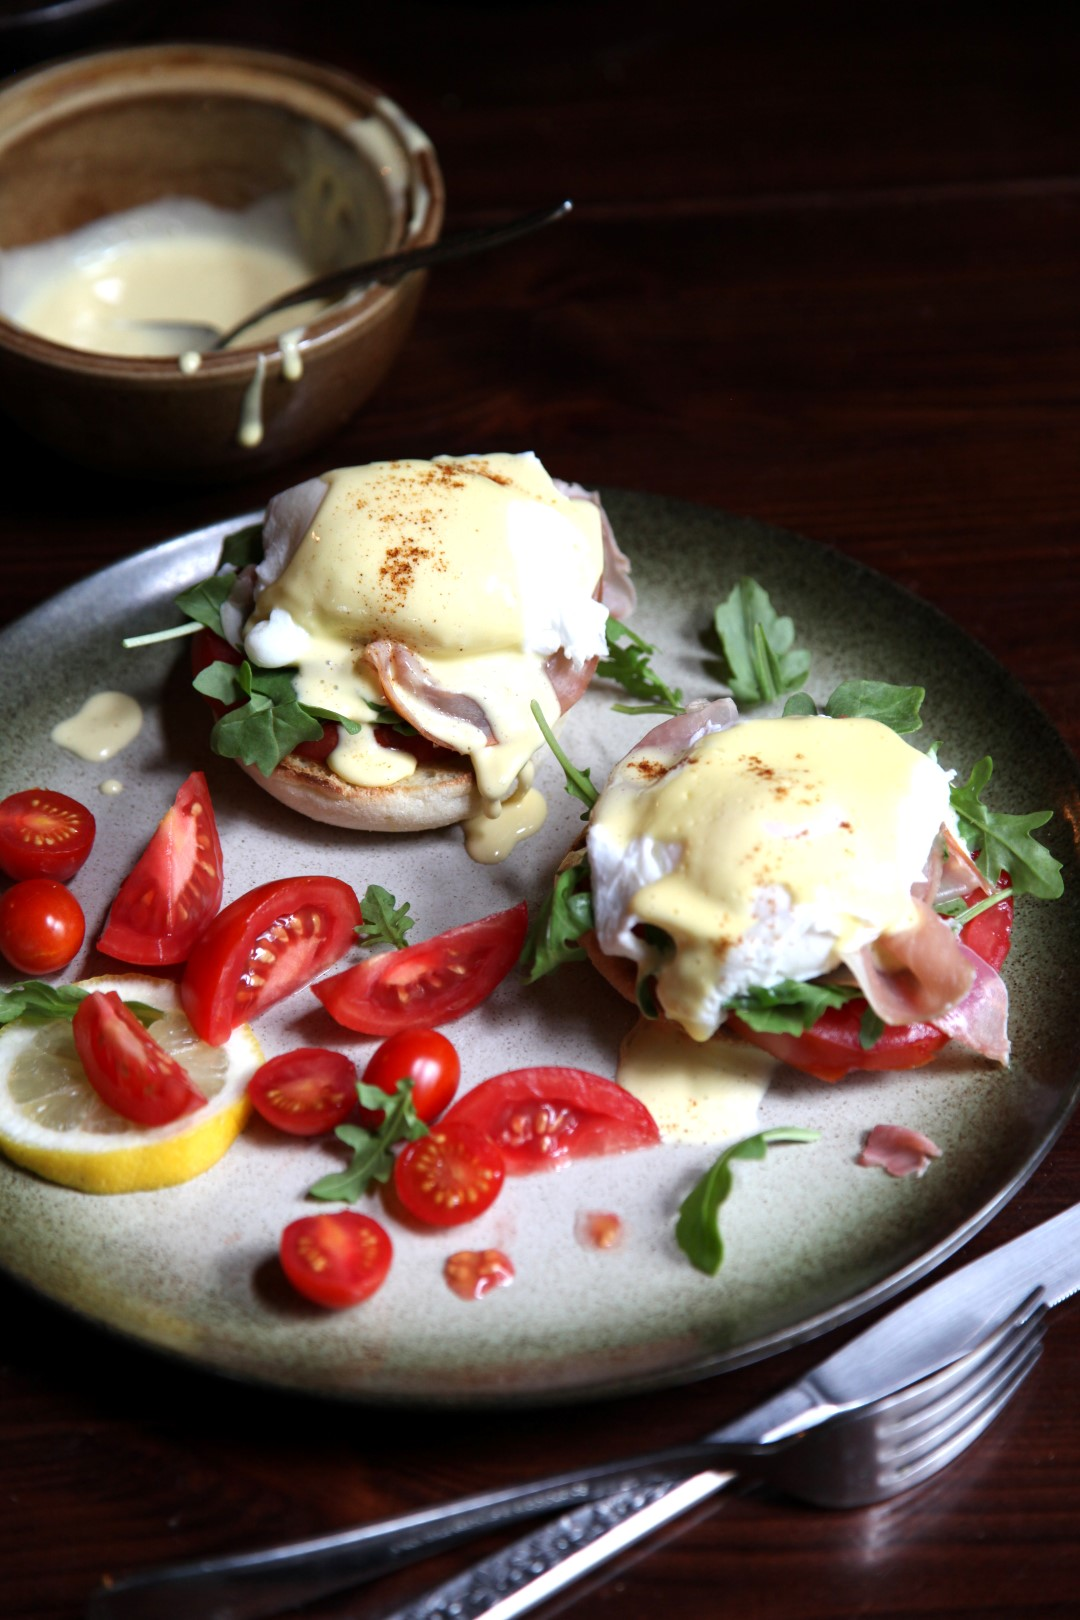 arugula-benedict-photo-credit-heidi-larsen-foodie-crush-large